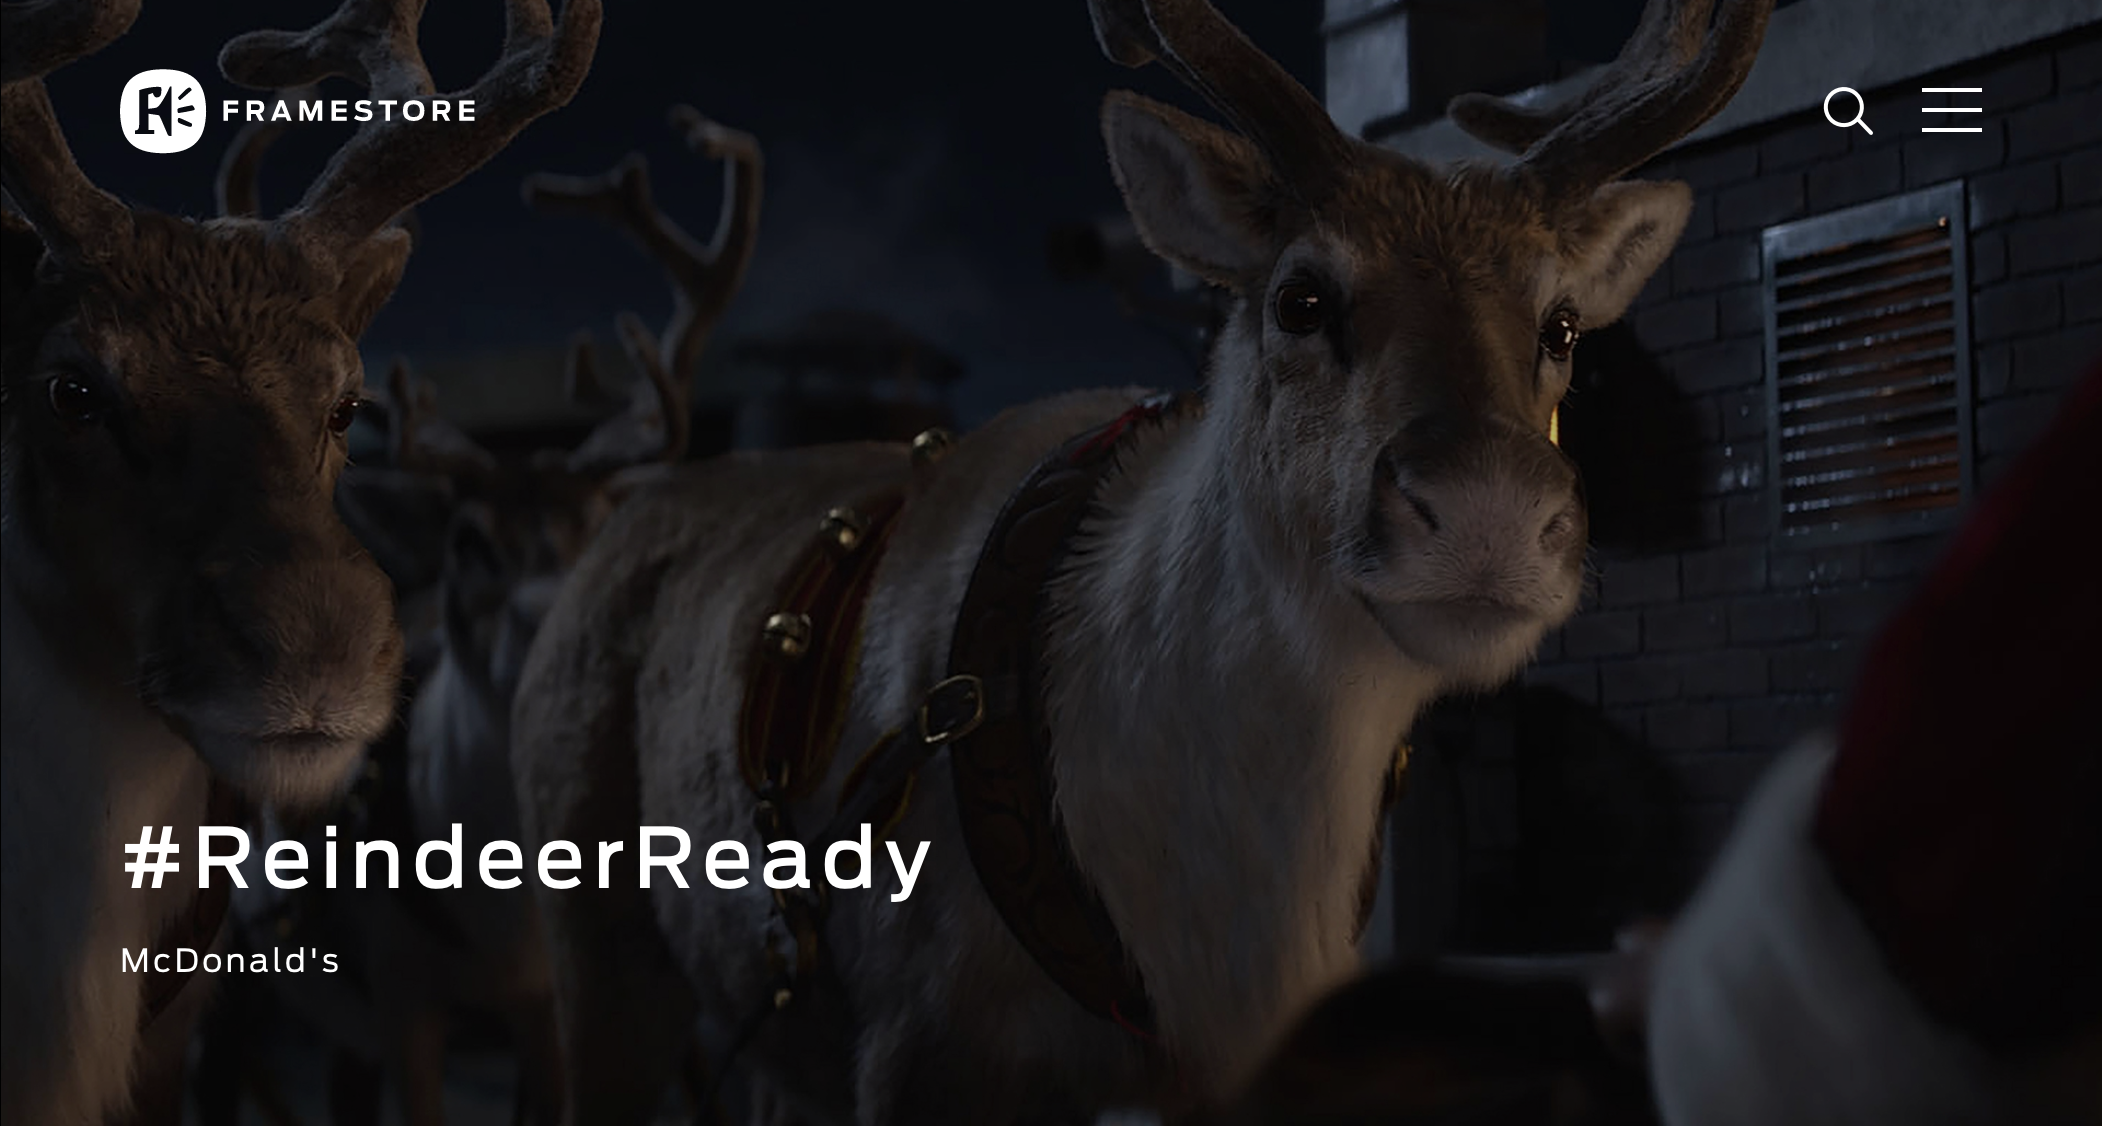 Click the image to watch the ad and read about how Framestore created the reindeer entirely in CG